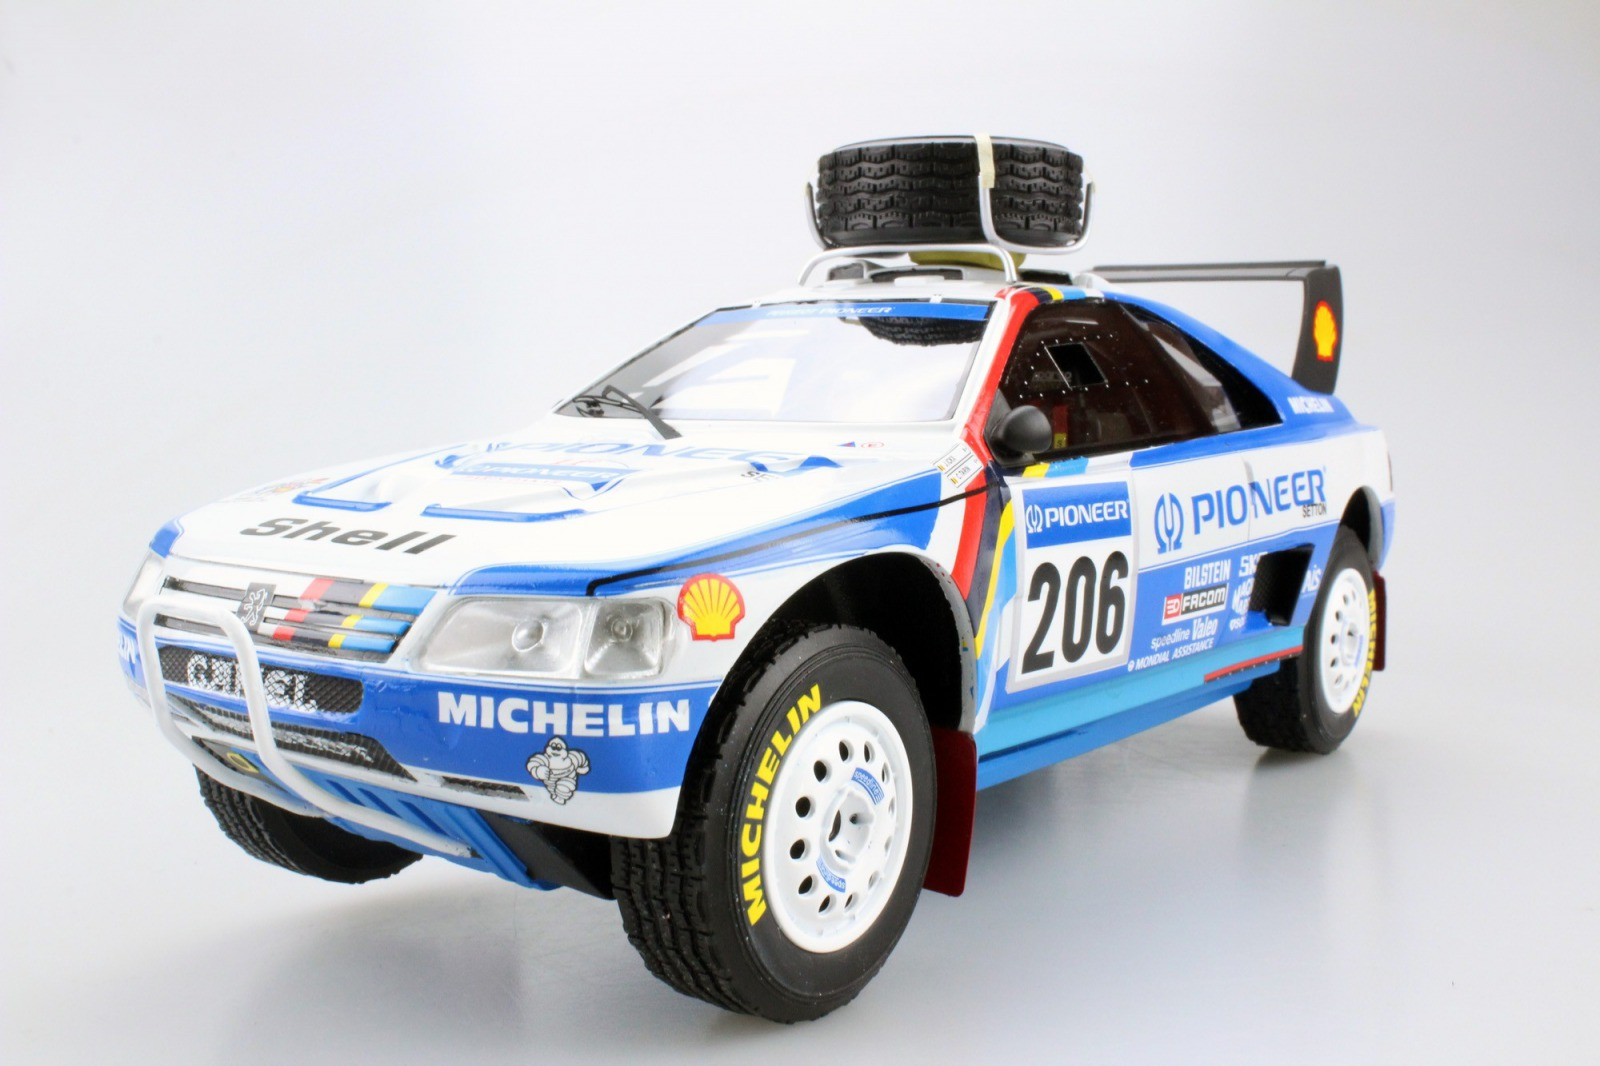 Top Marques トップマルケス 1:18 1990年ラリー・パリダカ 2位 プジョー 405 Turbo 16 No.206PEUGEOT - 405 TURBO 16 (T-16) N 206 2nd RALLY PARIS DAKAR 1990 J.ICKX - C.TARIN 1/18 by Top Marques EUR